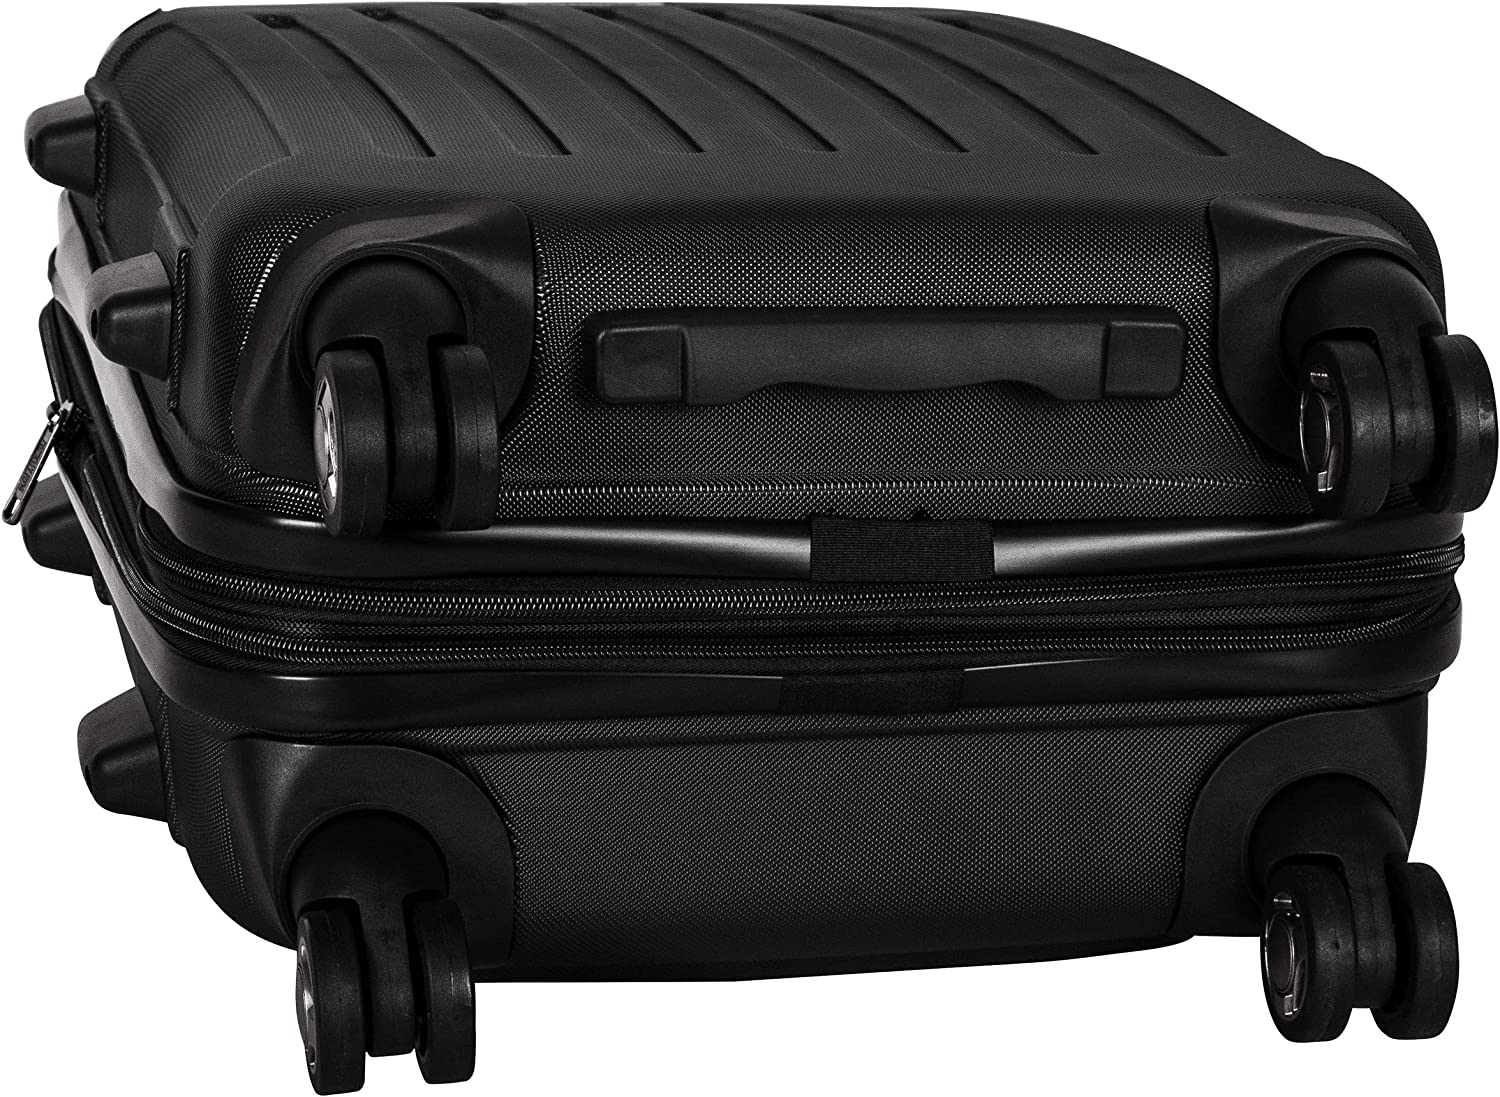 Kenneth Cole Reaction Renegade 28 ABS Expandable 8-Wheel Upright Navy